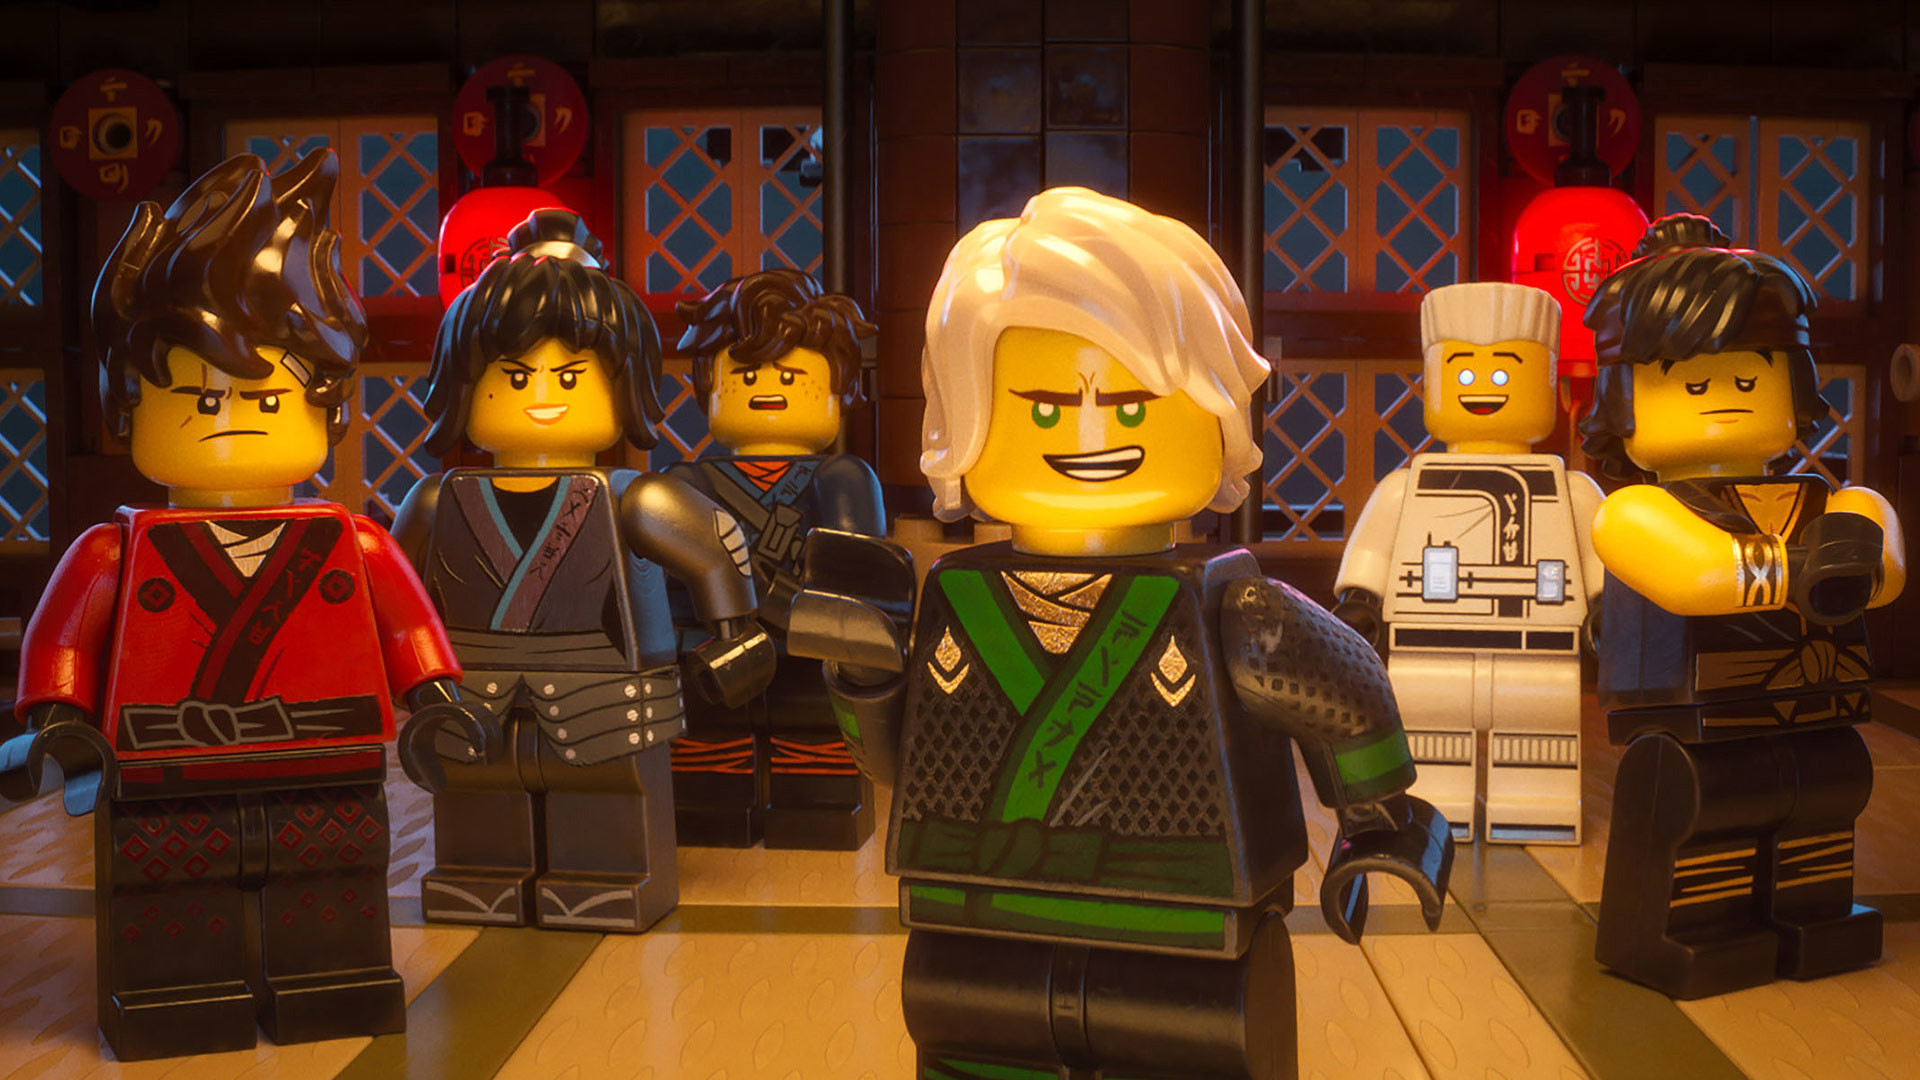 1920x1080 The LEGO Ninjago Movie Wallpaper ninjas